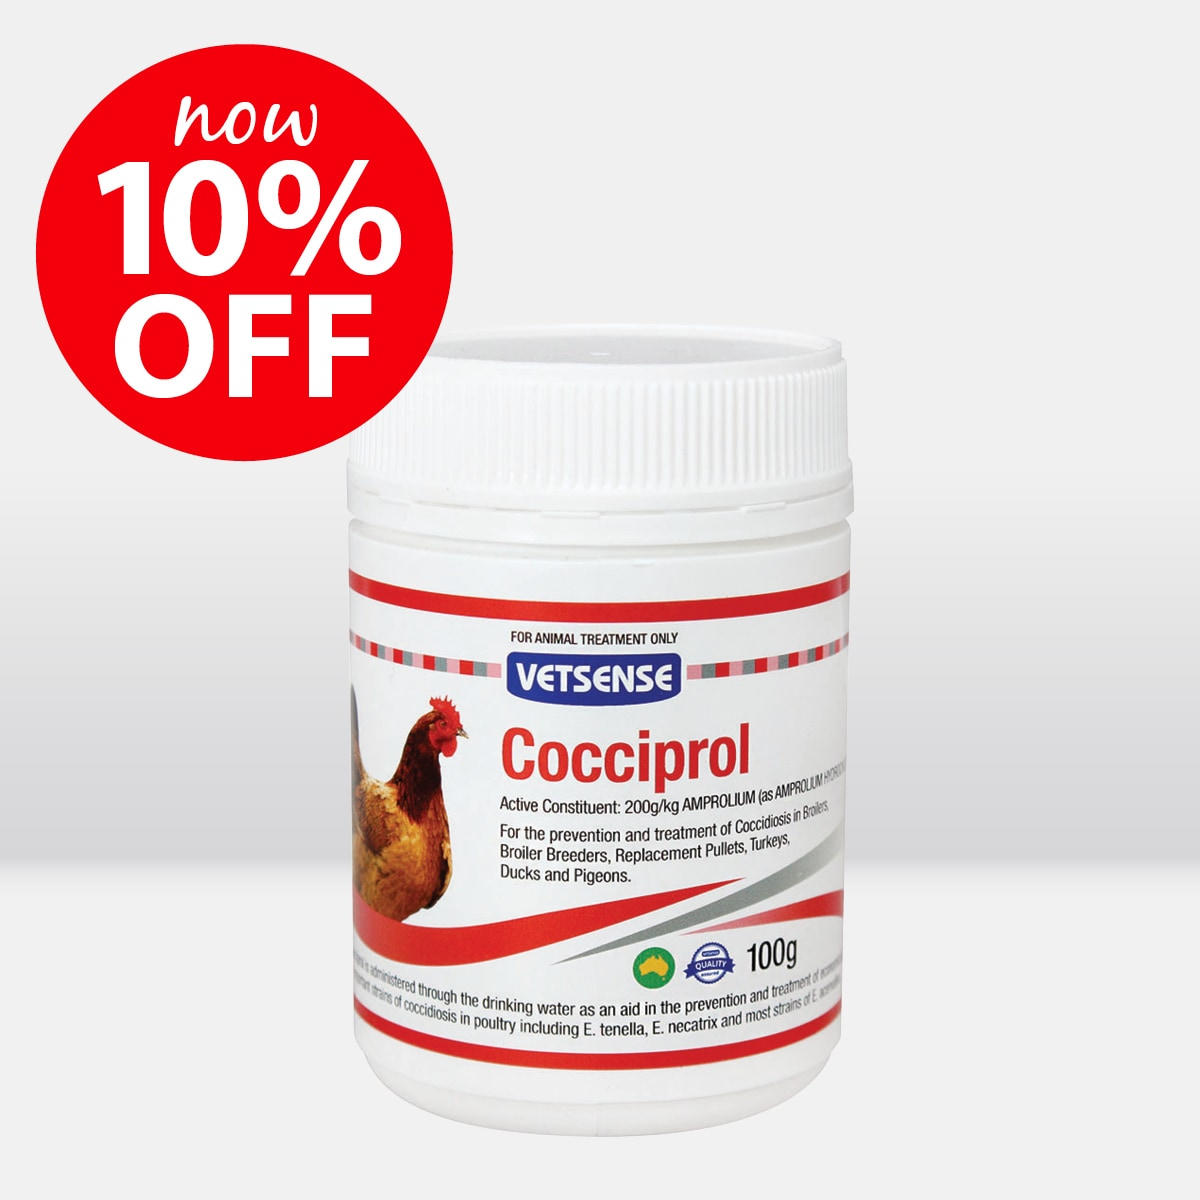 Cocciprol ON SALE NOW